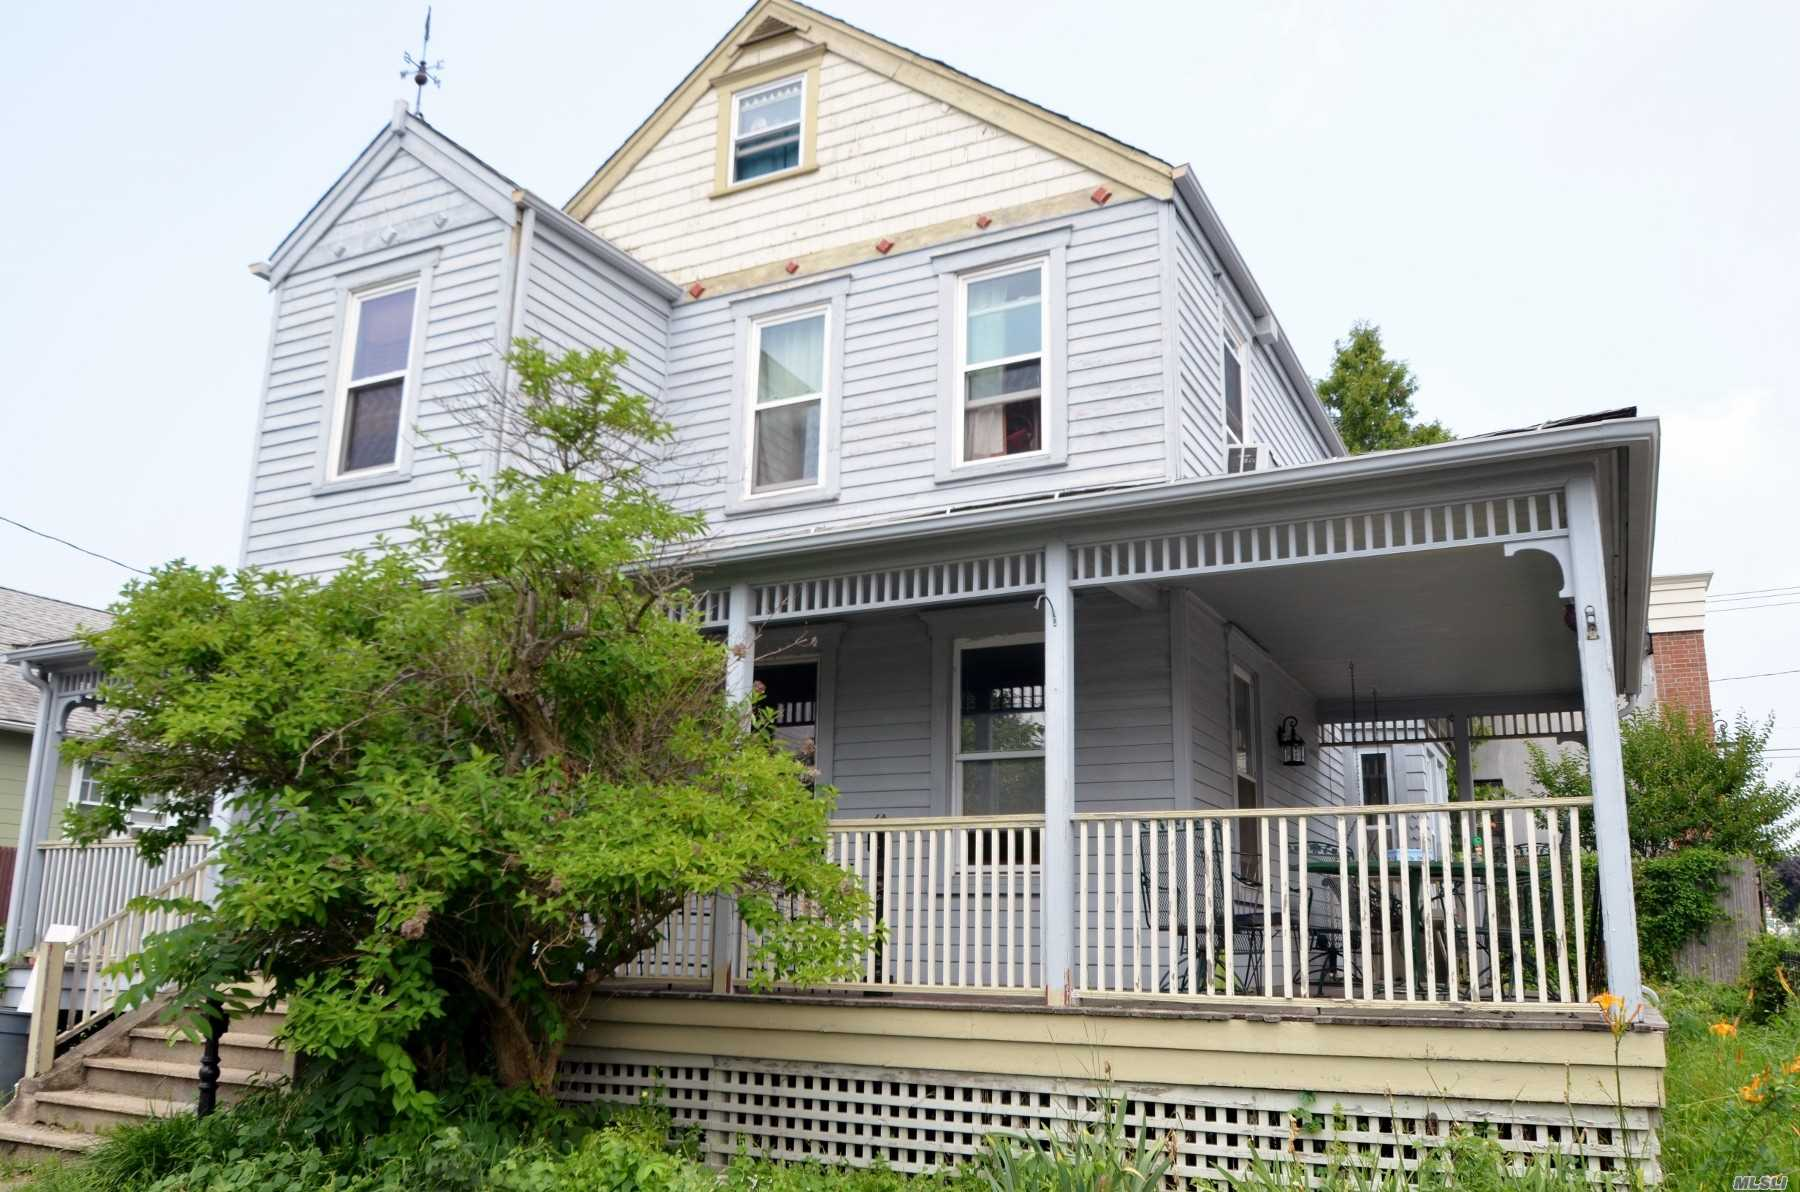 Wraparound Porch Invites You Into This C.1863 Colonial With Spacious Rms, High Clg's, 3 Bdrms, 2.5 Baths, Including Master Suite. Finished Heated Attic For Storage. Full Unfinished Basement, O/S Entry. A Wonderful Opportunity To Make This Your Own!